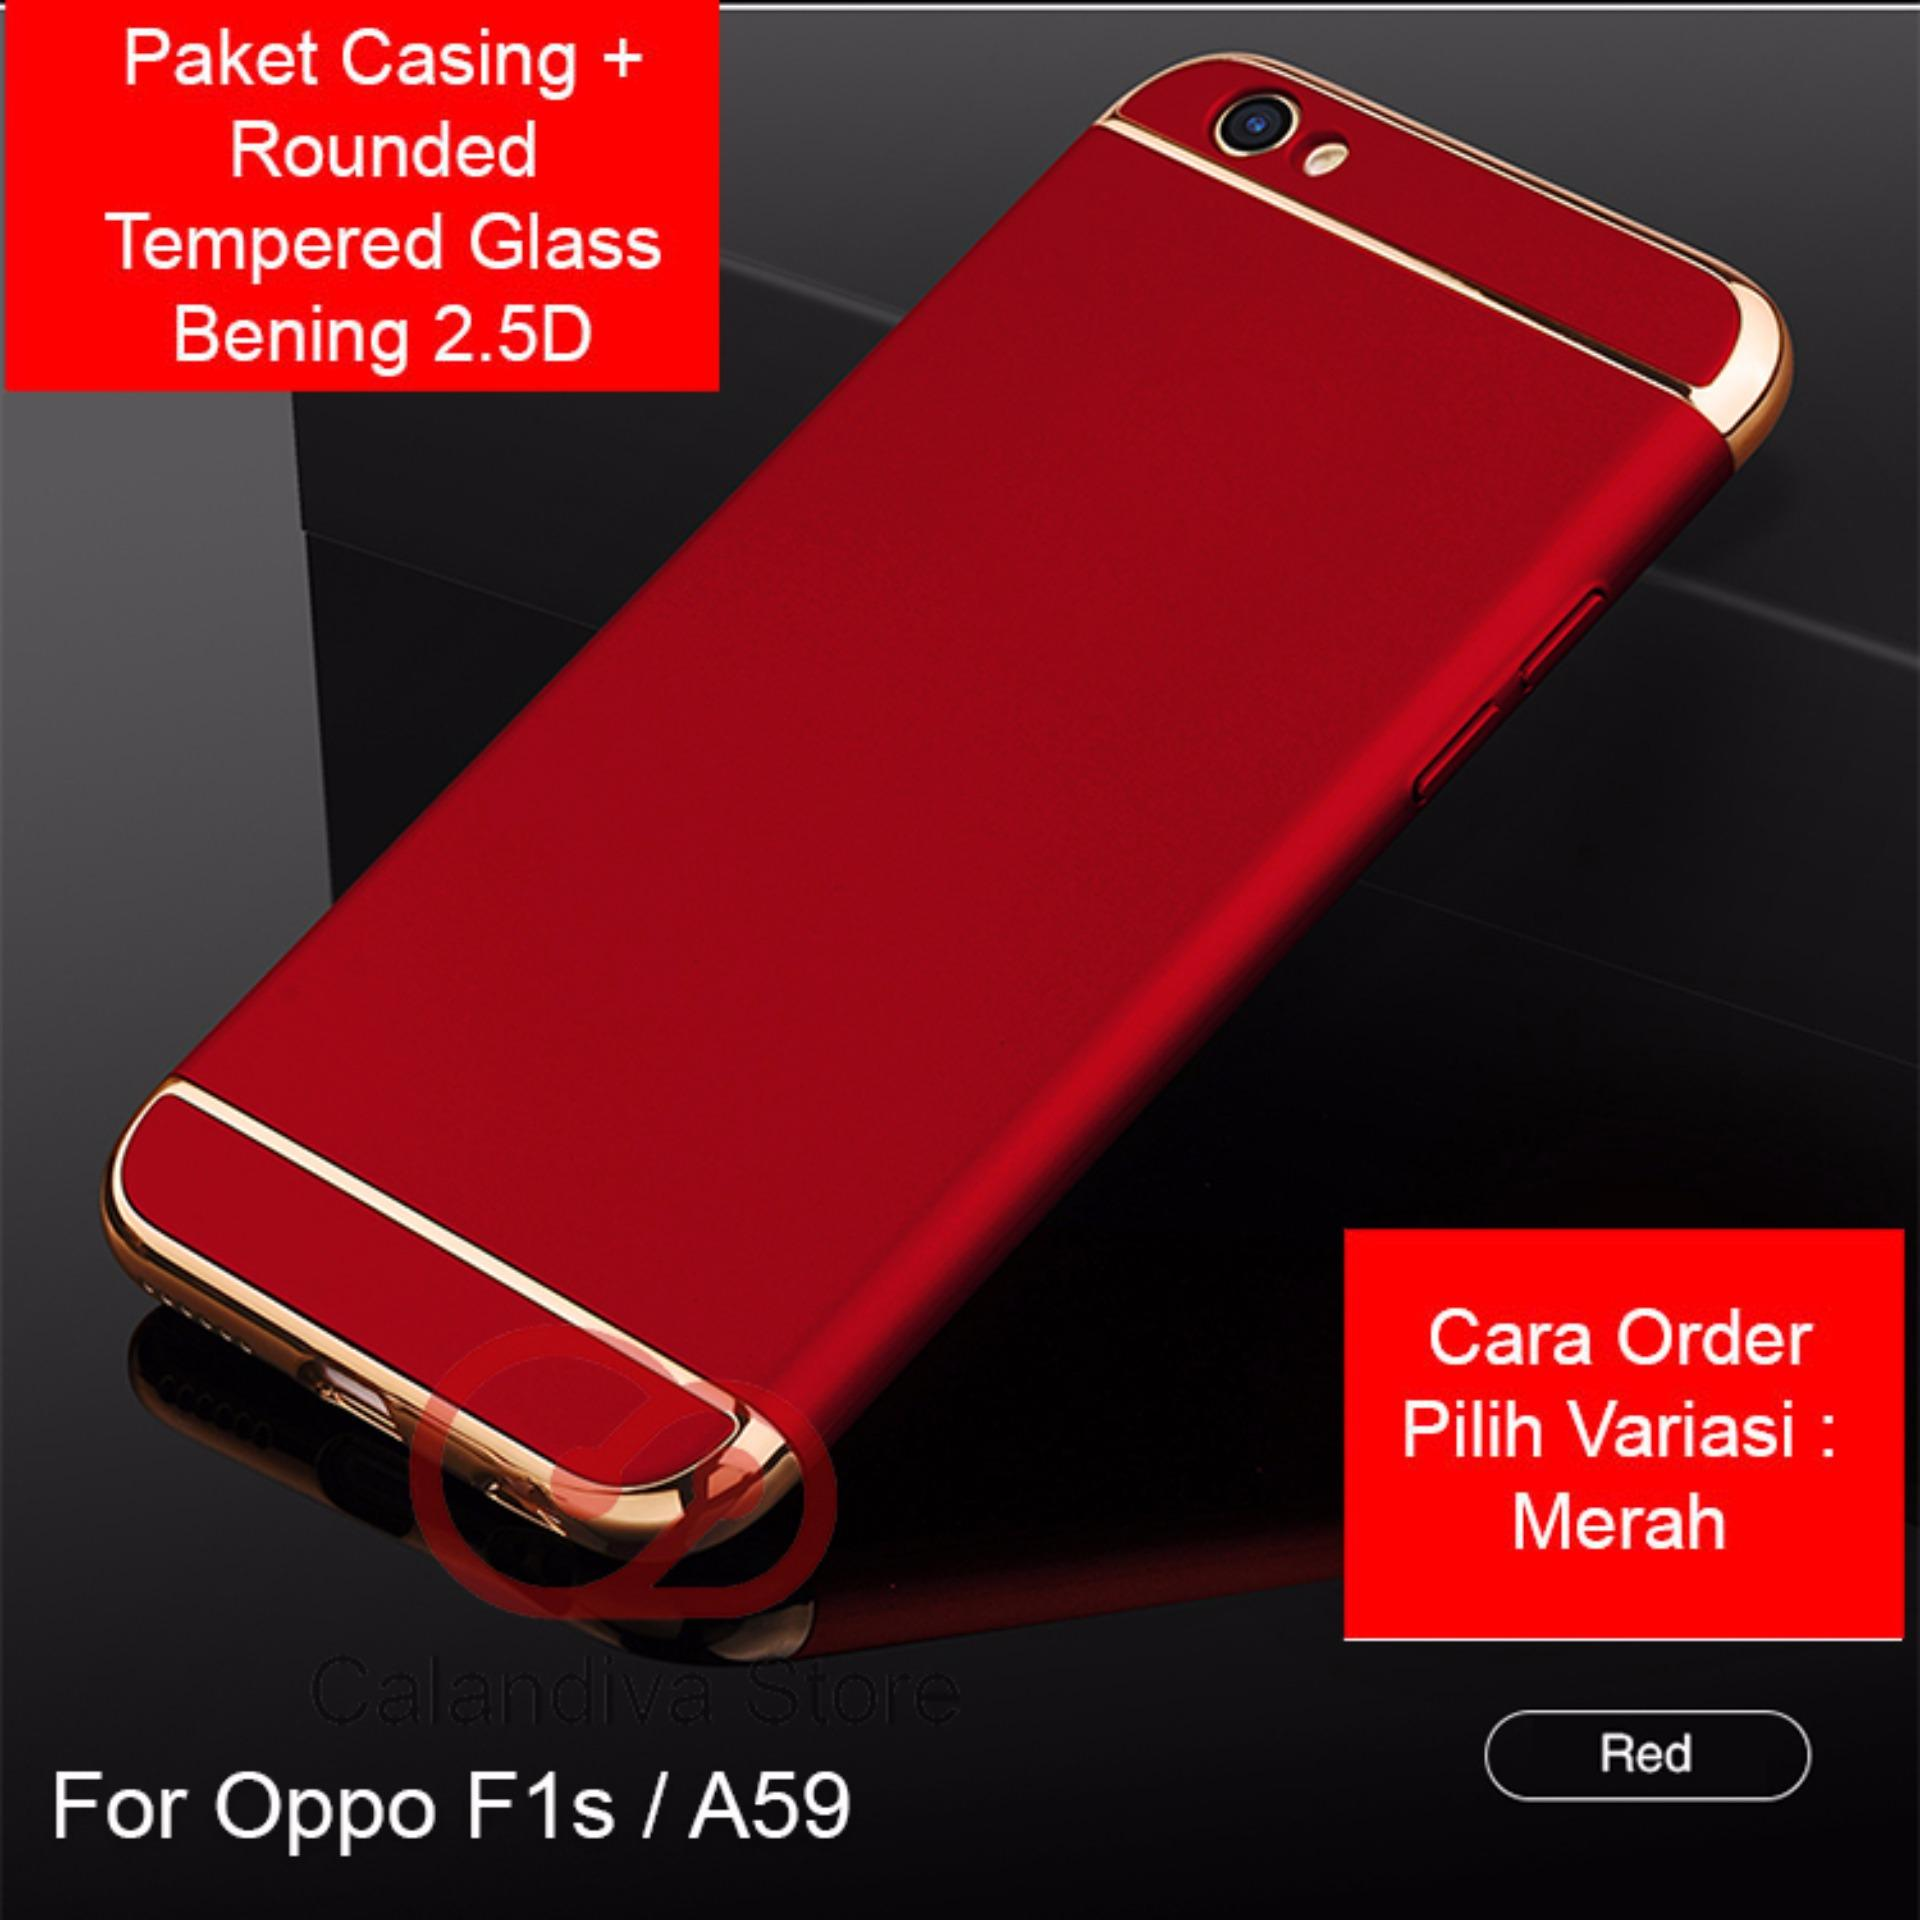 Calandiva Premium Front Back 360 Degree Full Protection Case For Luxury Tempered Glass Xiaomi Redmi Note 5 Hitam Review Of Quality Elegance Hardcase Oppo F1s A59 A59s 55